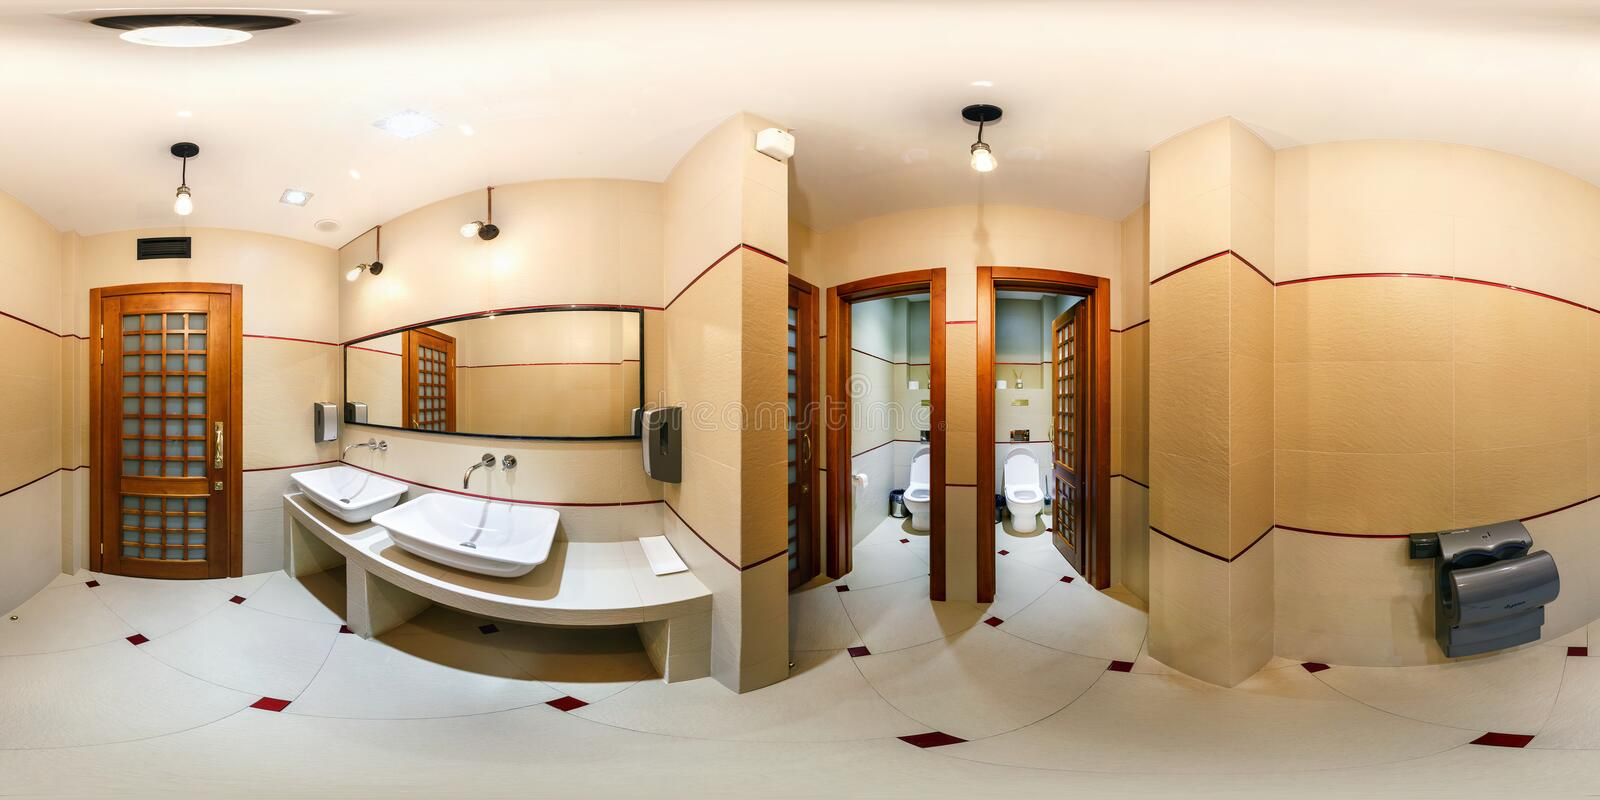 MINSK, BELARUS - JANUARY 25, 2015: Panorama in interior stylish bathroom restroom in modern office. Full 360 degree seamless stock images